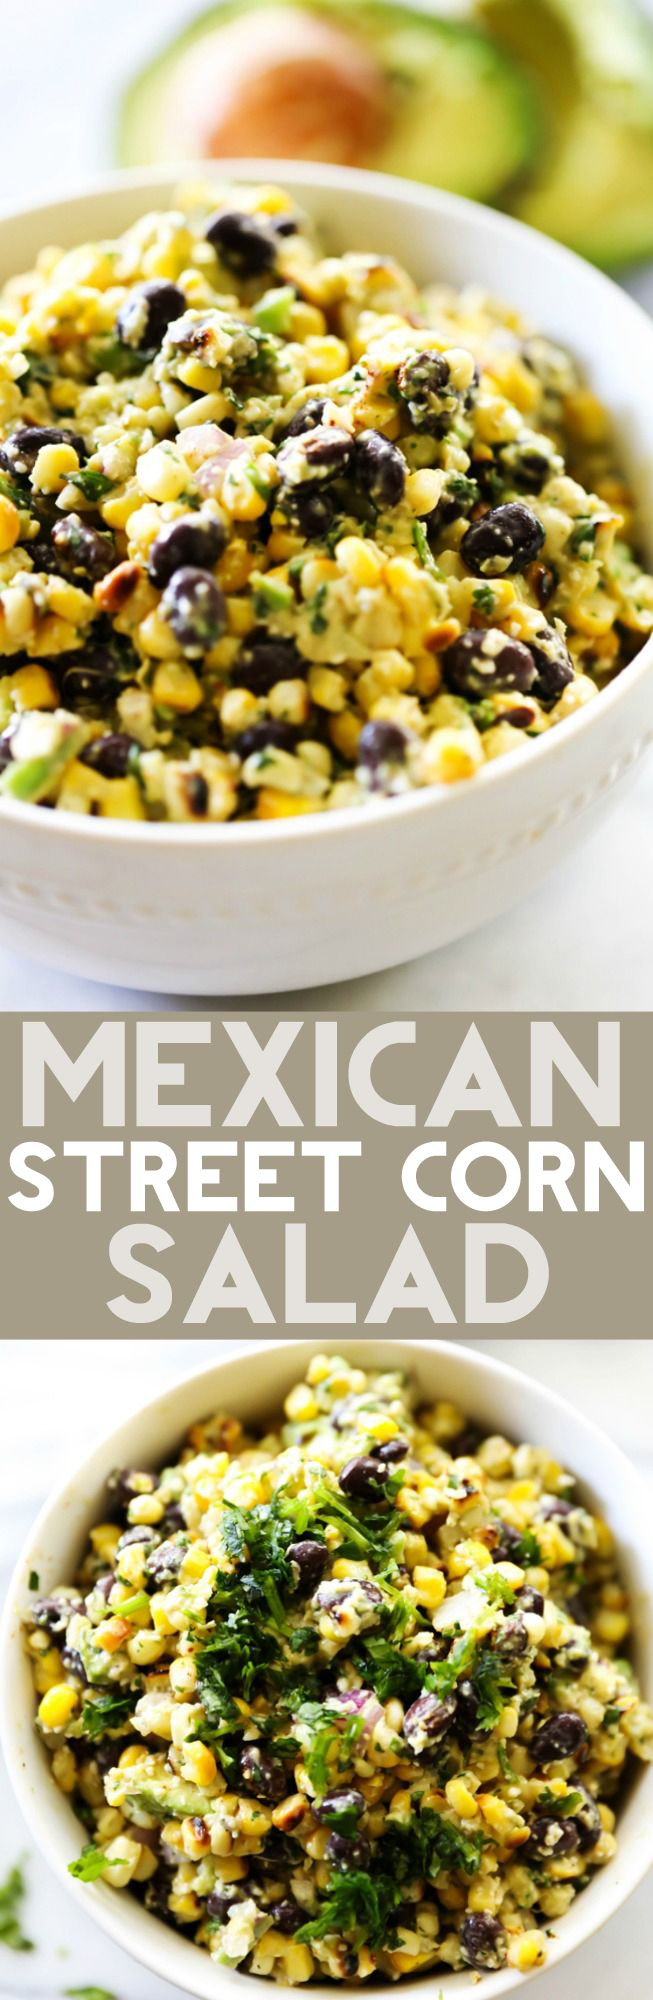 Mexican Street Corn Salad Party Etizersmexican Recipesvegetarian